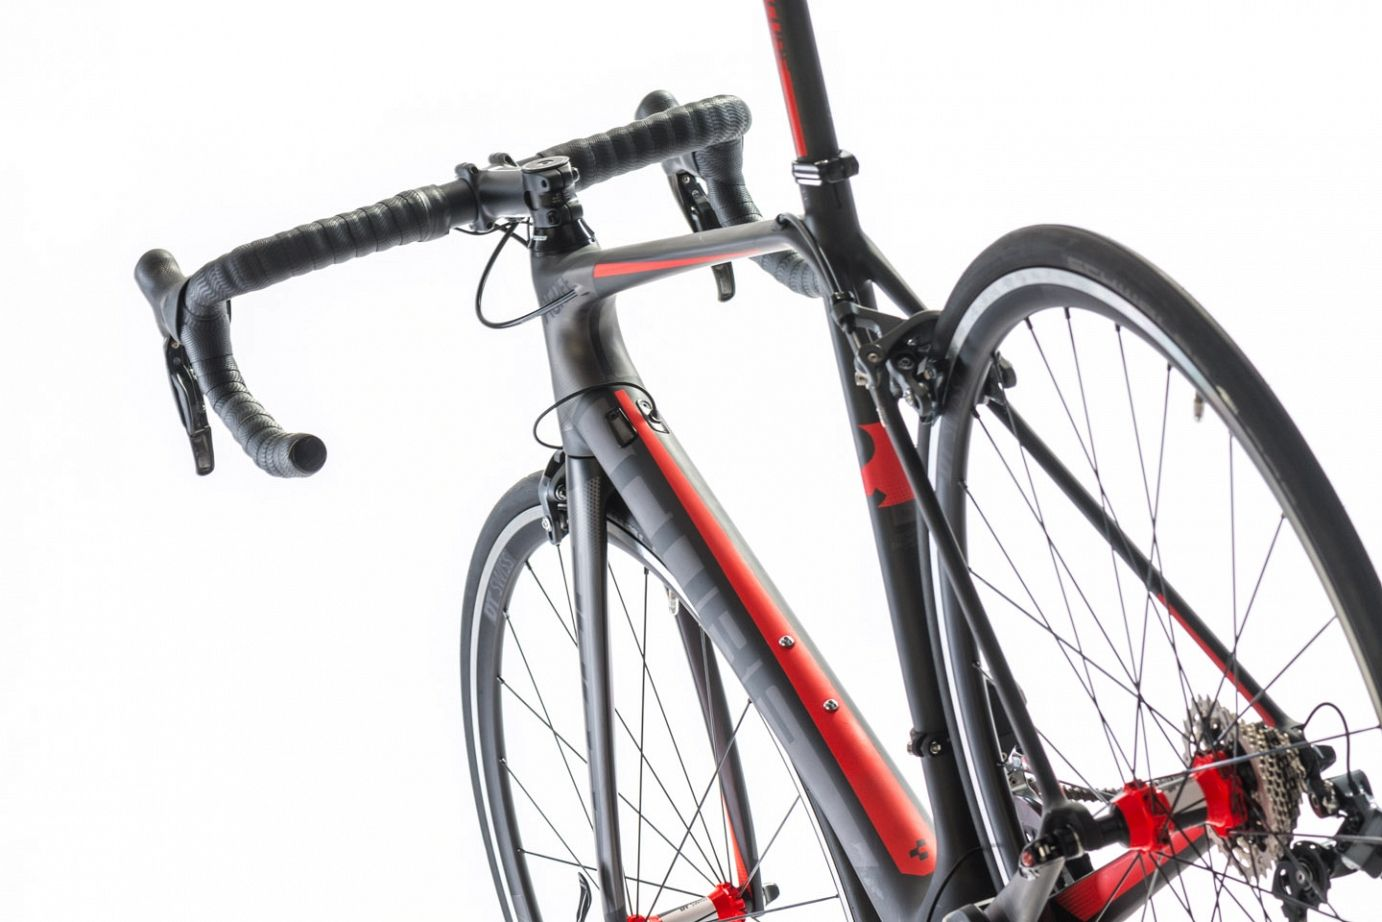 the latest order save up to 80% Cube AGREE GTC SLT Di2 2014 review - The Bike List